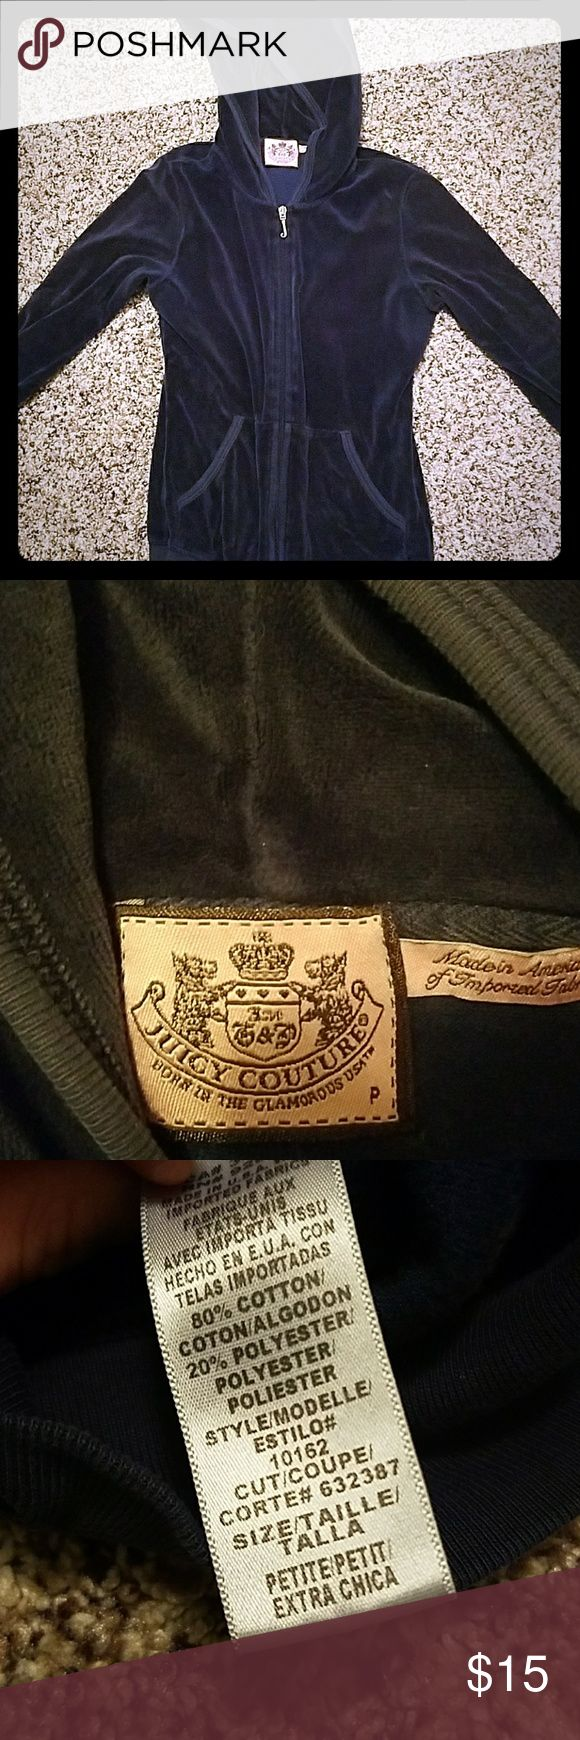 Juicy Couture terry zip up jacket. Great condition.  No stains.  I believe this is petite size extra small or small. It is too small for me. Dark blue. Great price. Juicy Couture Tops Sweatshirts & Hoodies